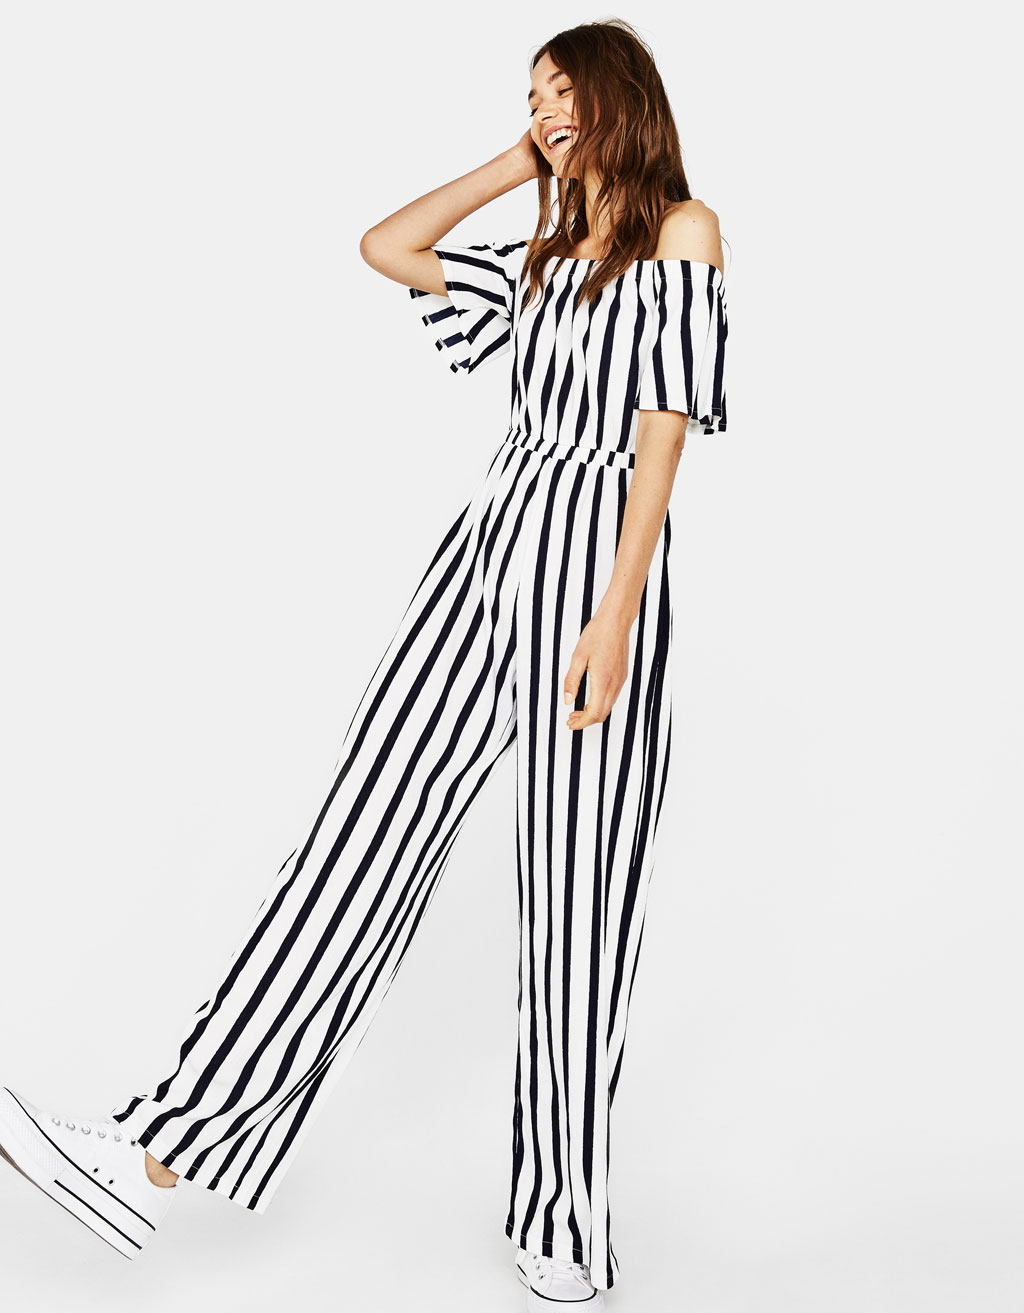 Striped off-the-shoulder overalls